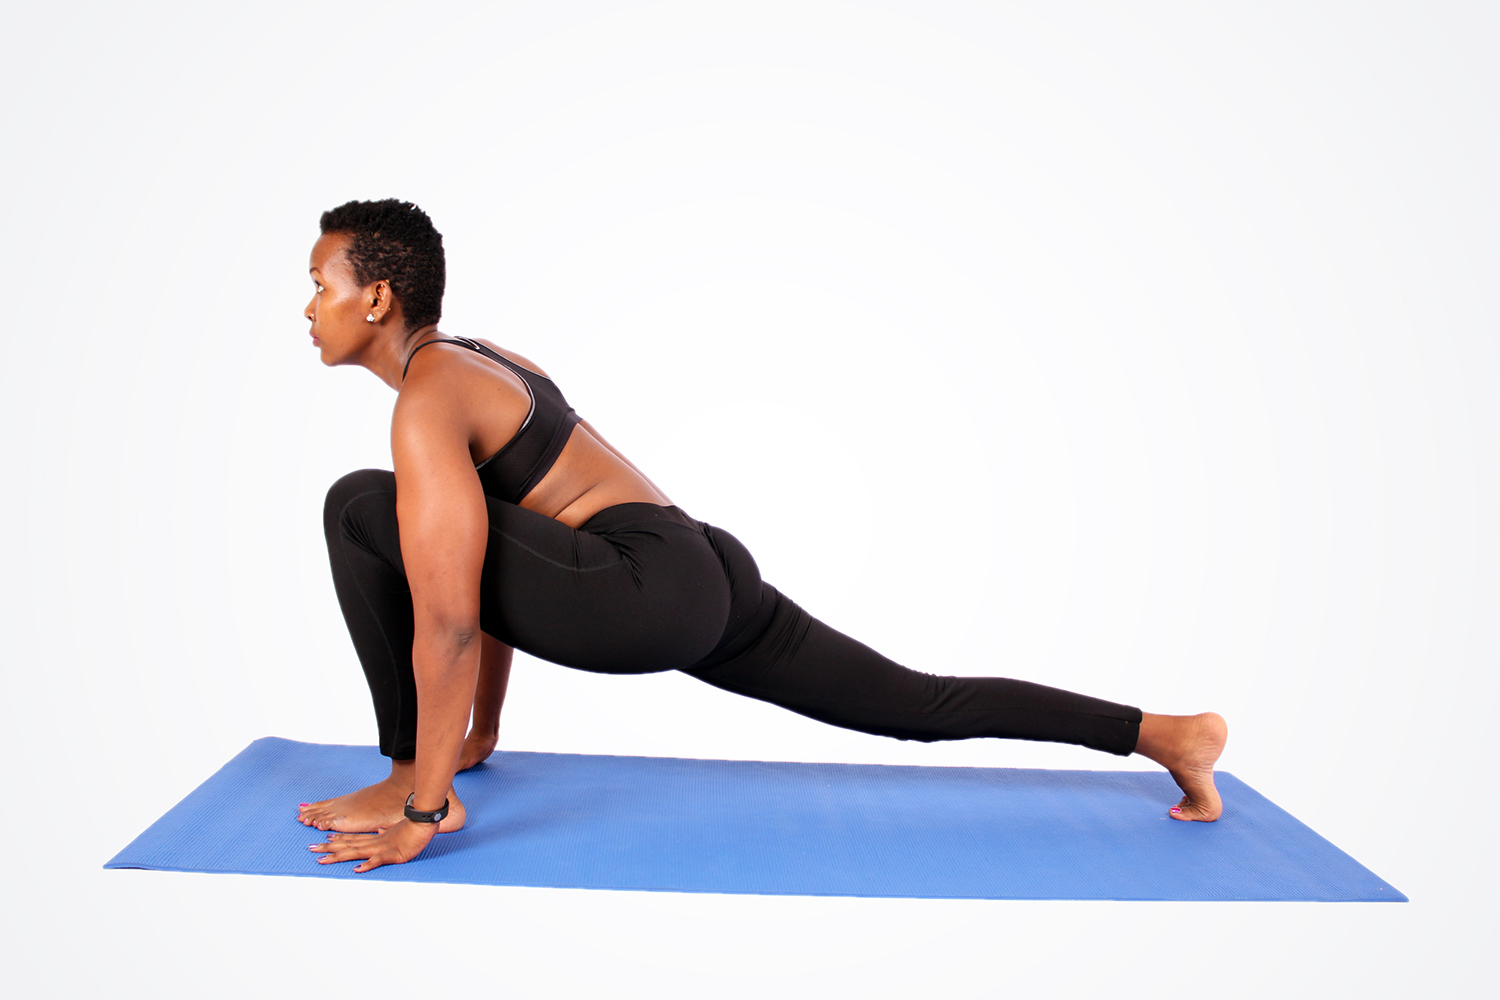 Fit Woman Doing Low Lunge Yoga Pose